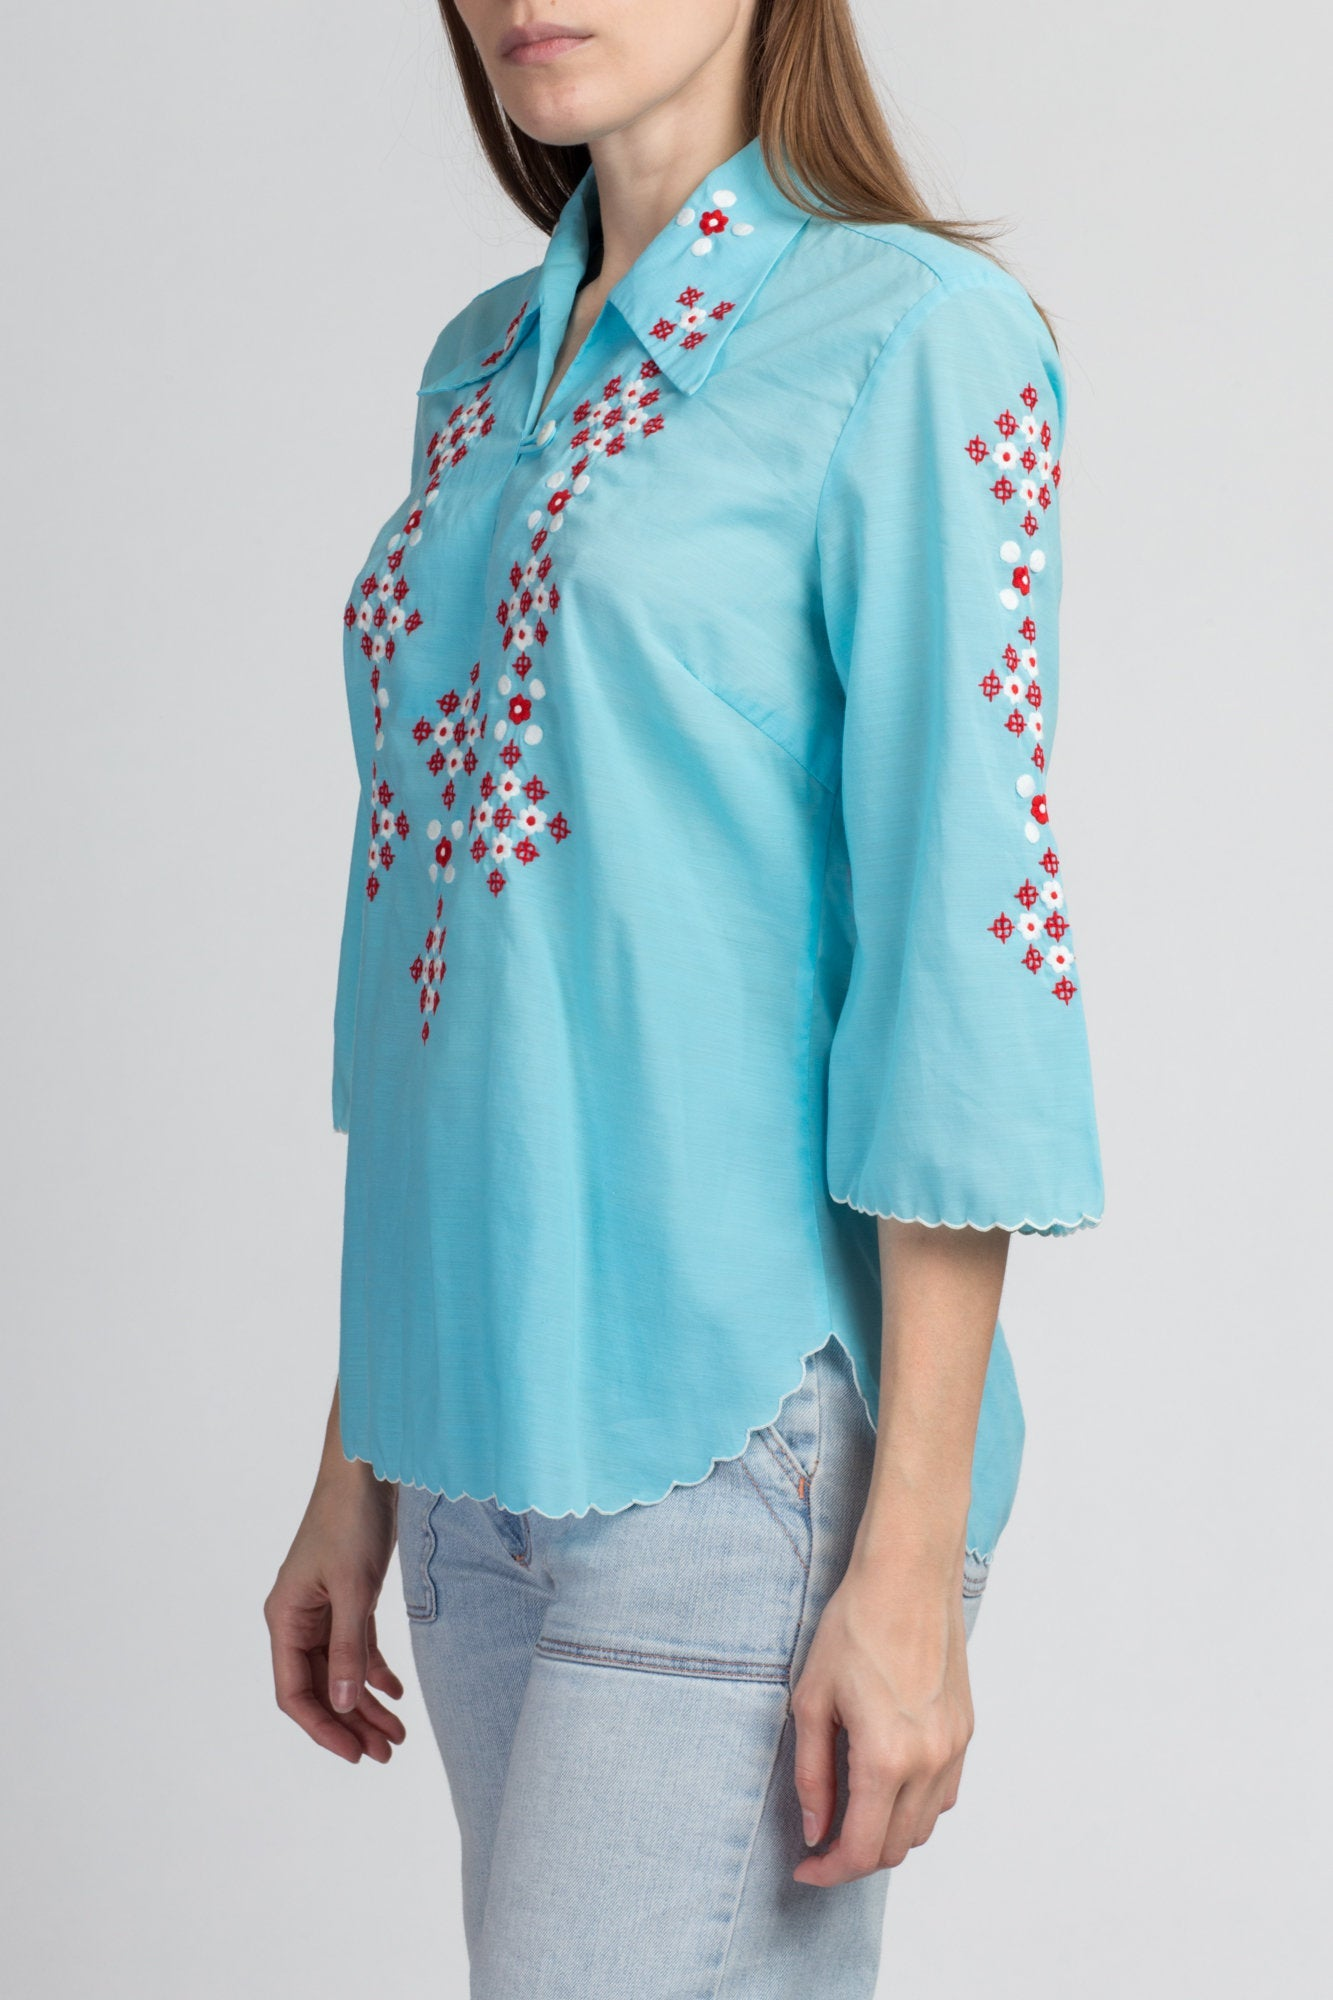 70s Boho Blue Embroidered Blouse - Large